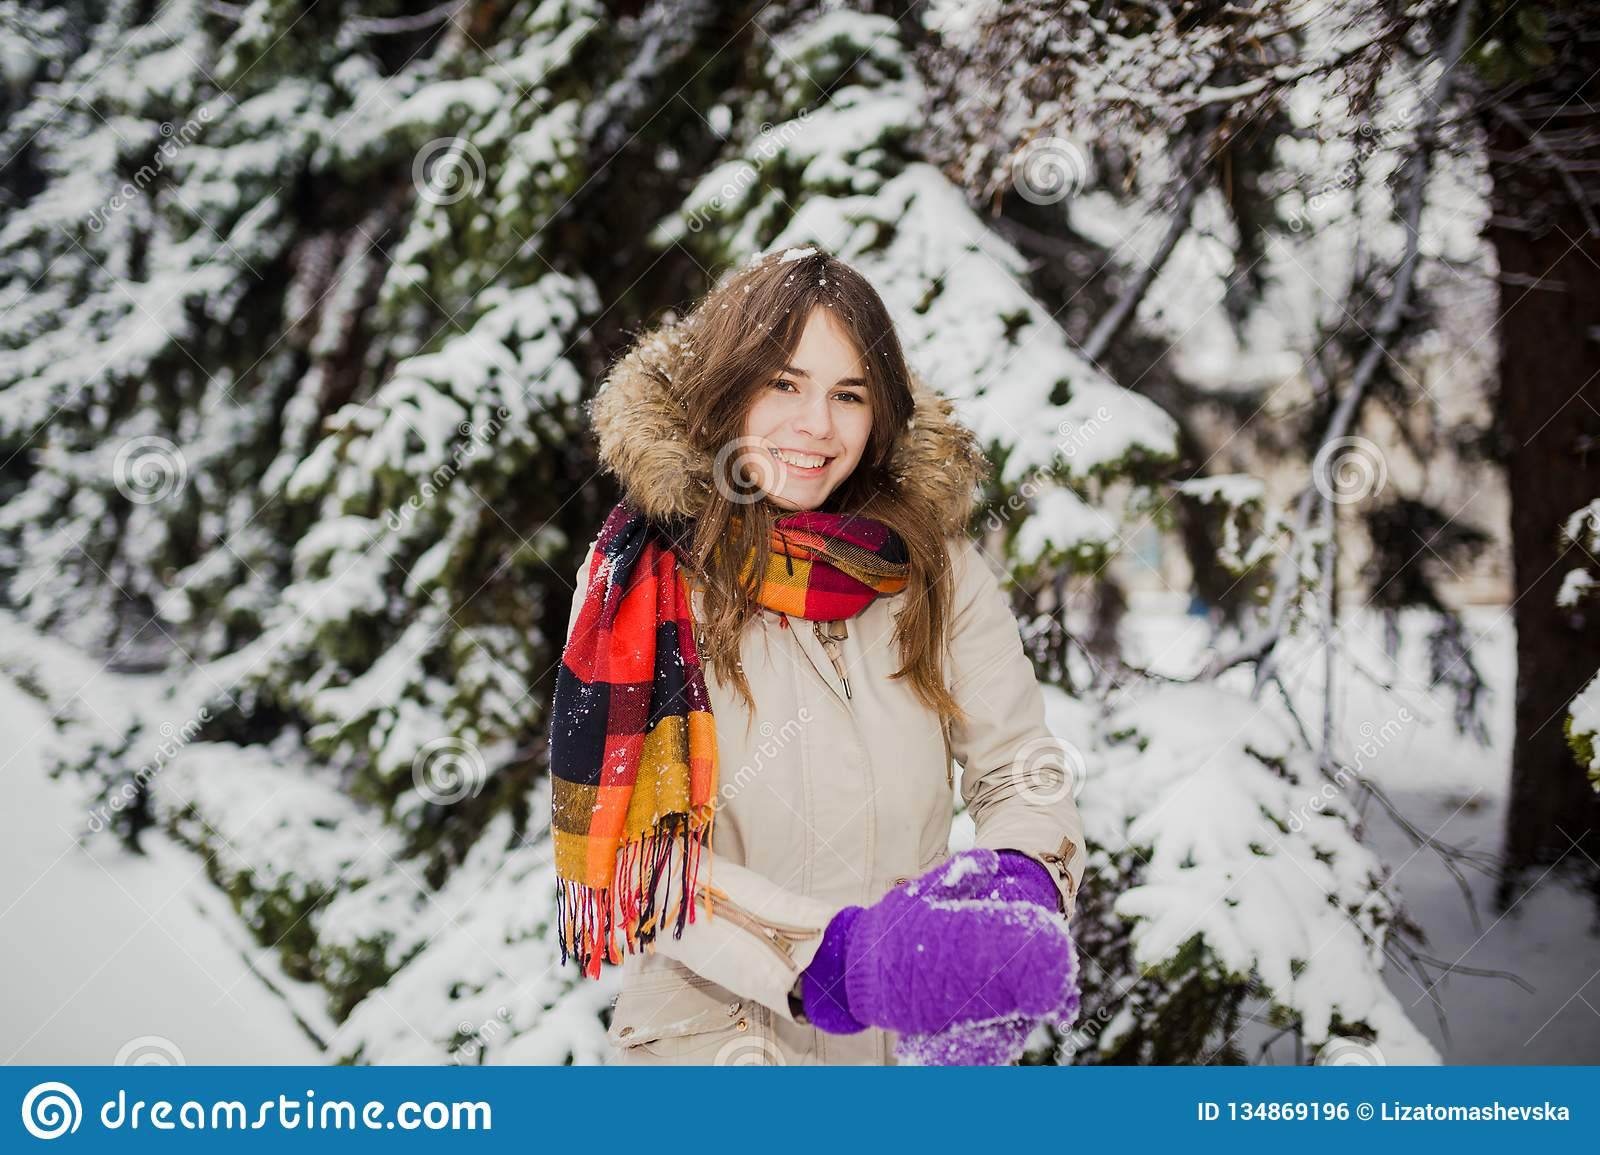 Beautiful young Caucasian people have the joy of happiness and fun in the winter in a snowy forest. Sculpt to make hands